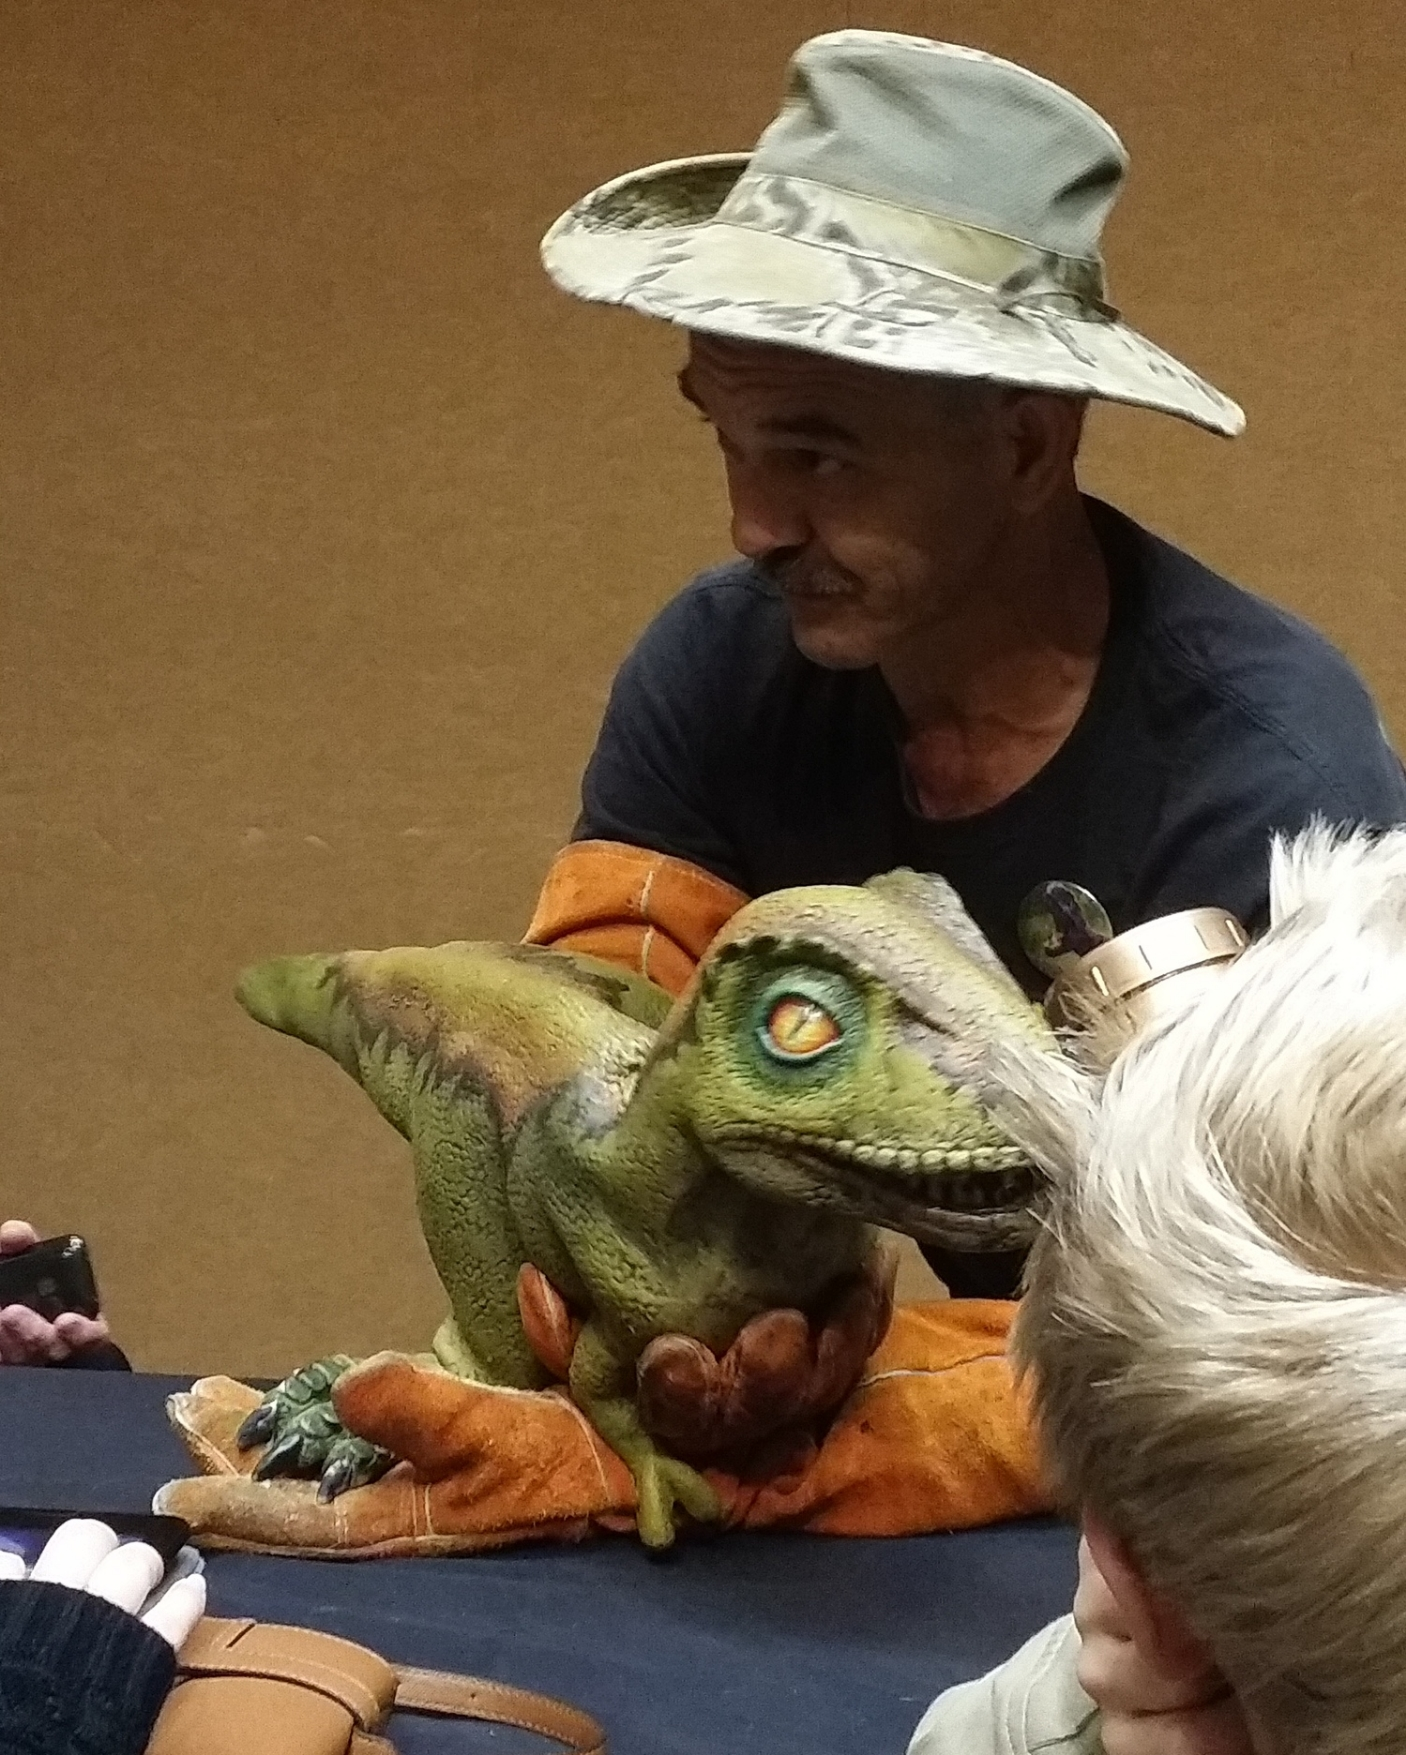 At a panel, I  met a baby T-Rex courtesy of  Dakota and Friends .